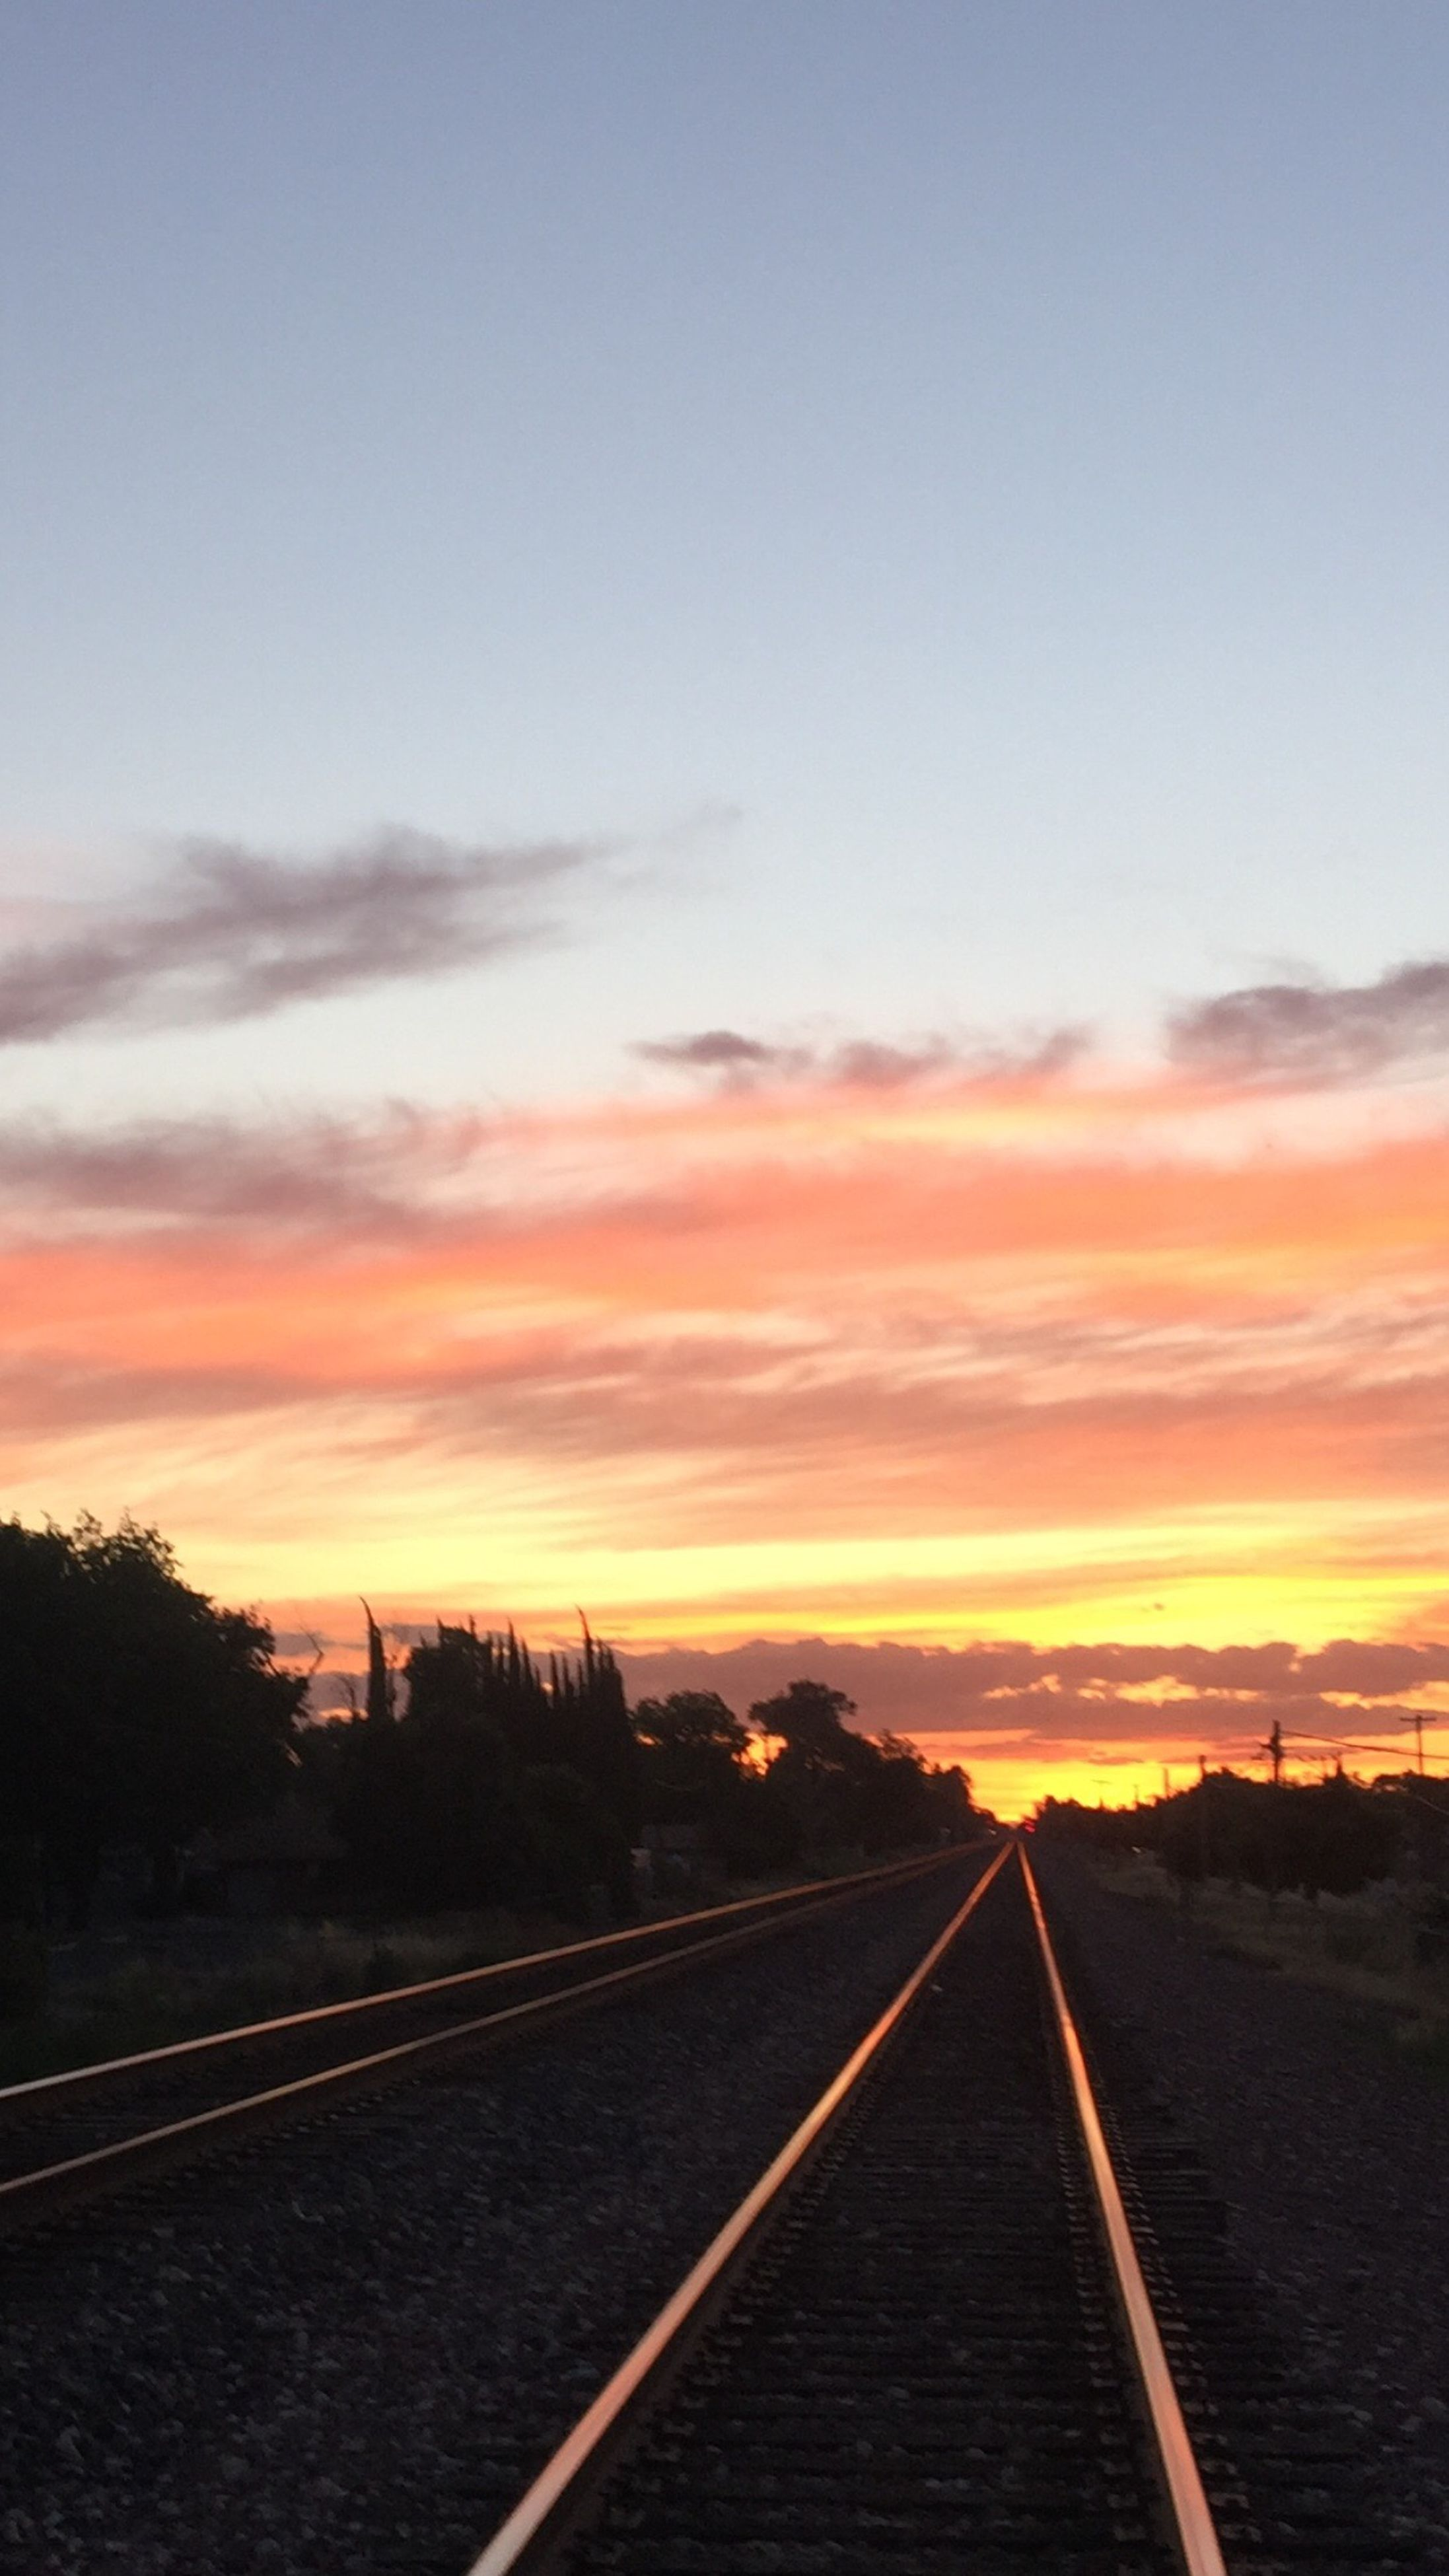 the way forward, railroad track, transportation, sunset, diminishing perspective, sky, vanishing point, rail transportation, orange color, cloud - sky, road, straight, landscape, tranquil scene, tranquility, long, nature, dusk, outdoors, no people